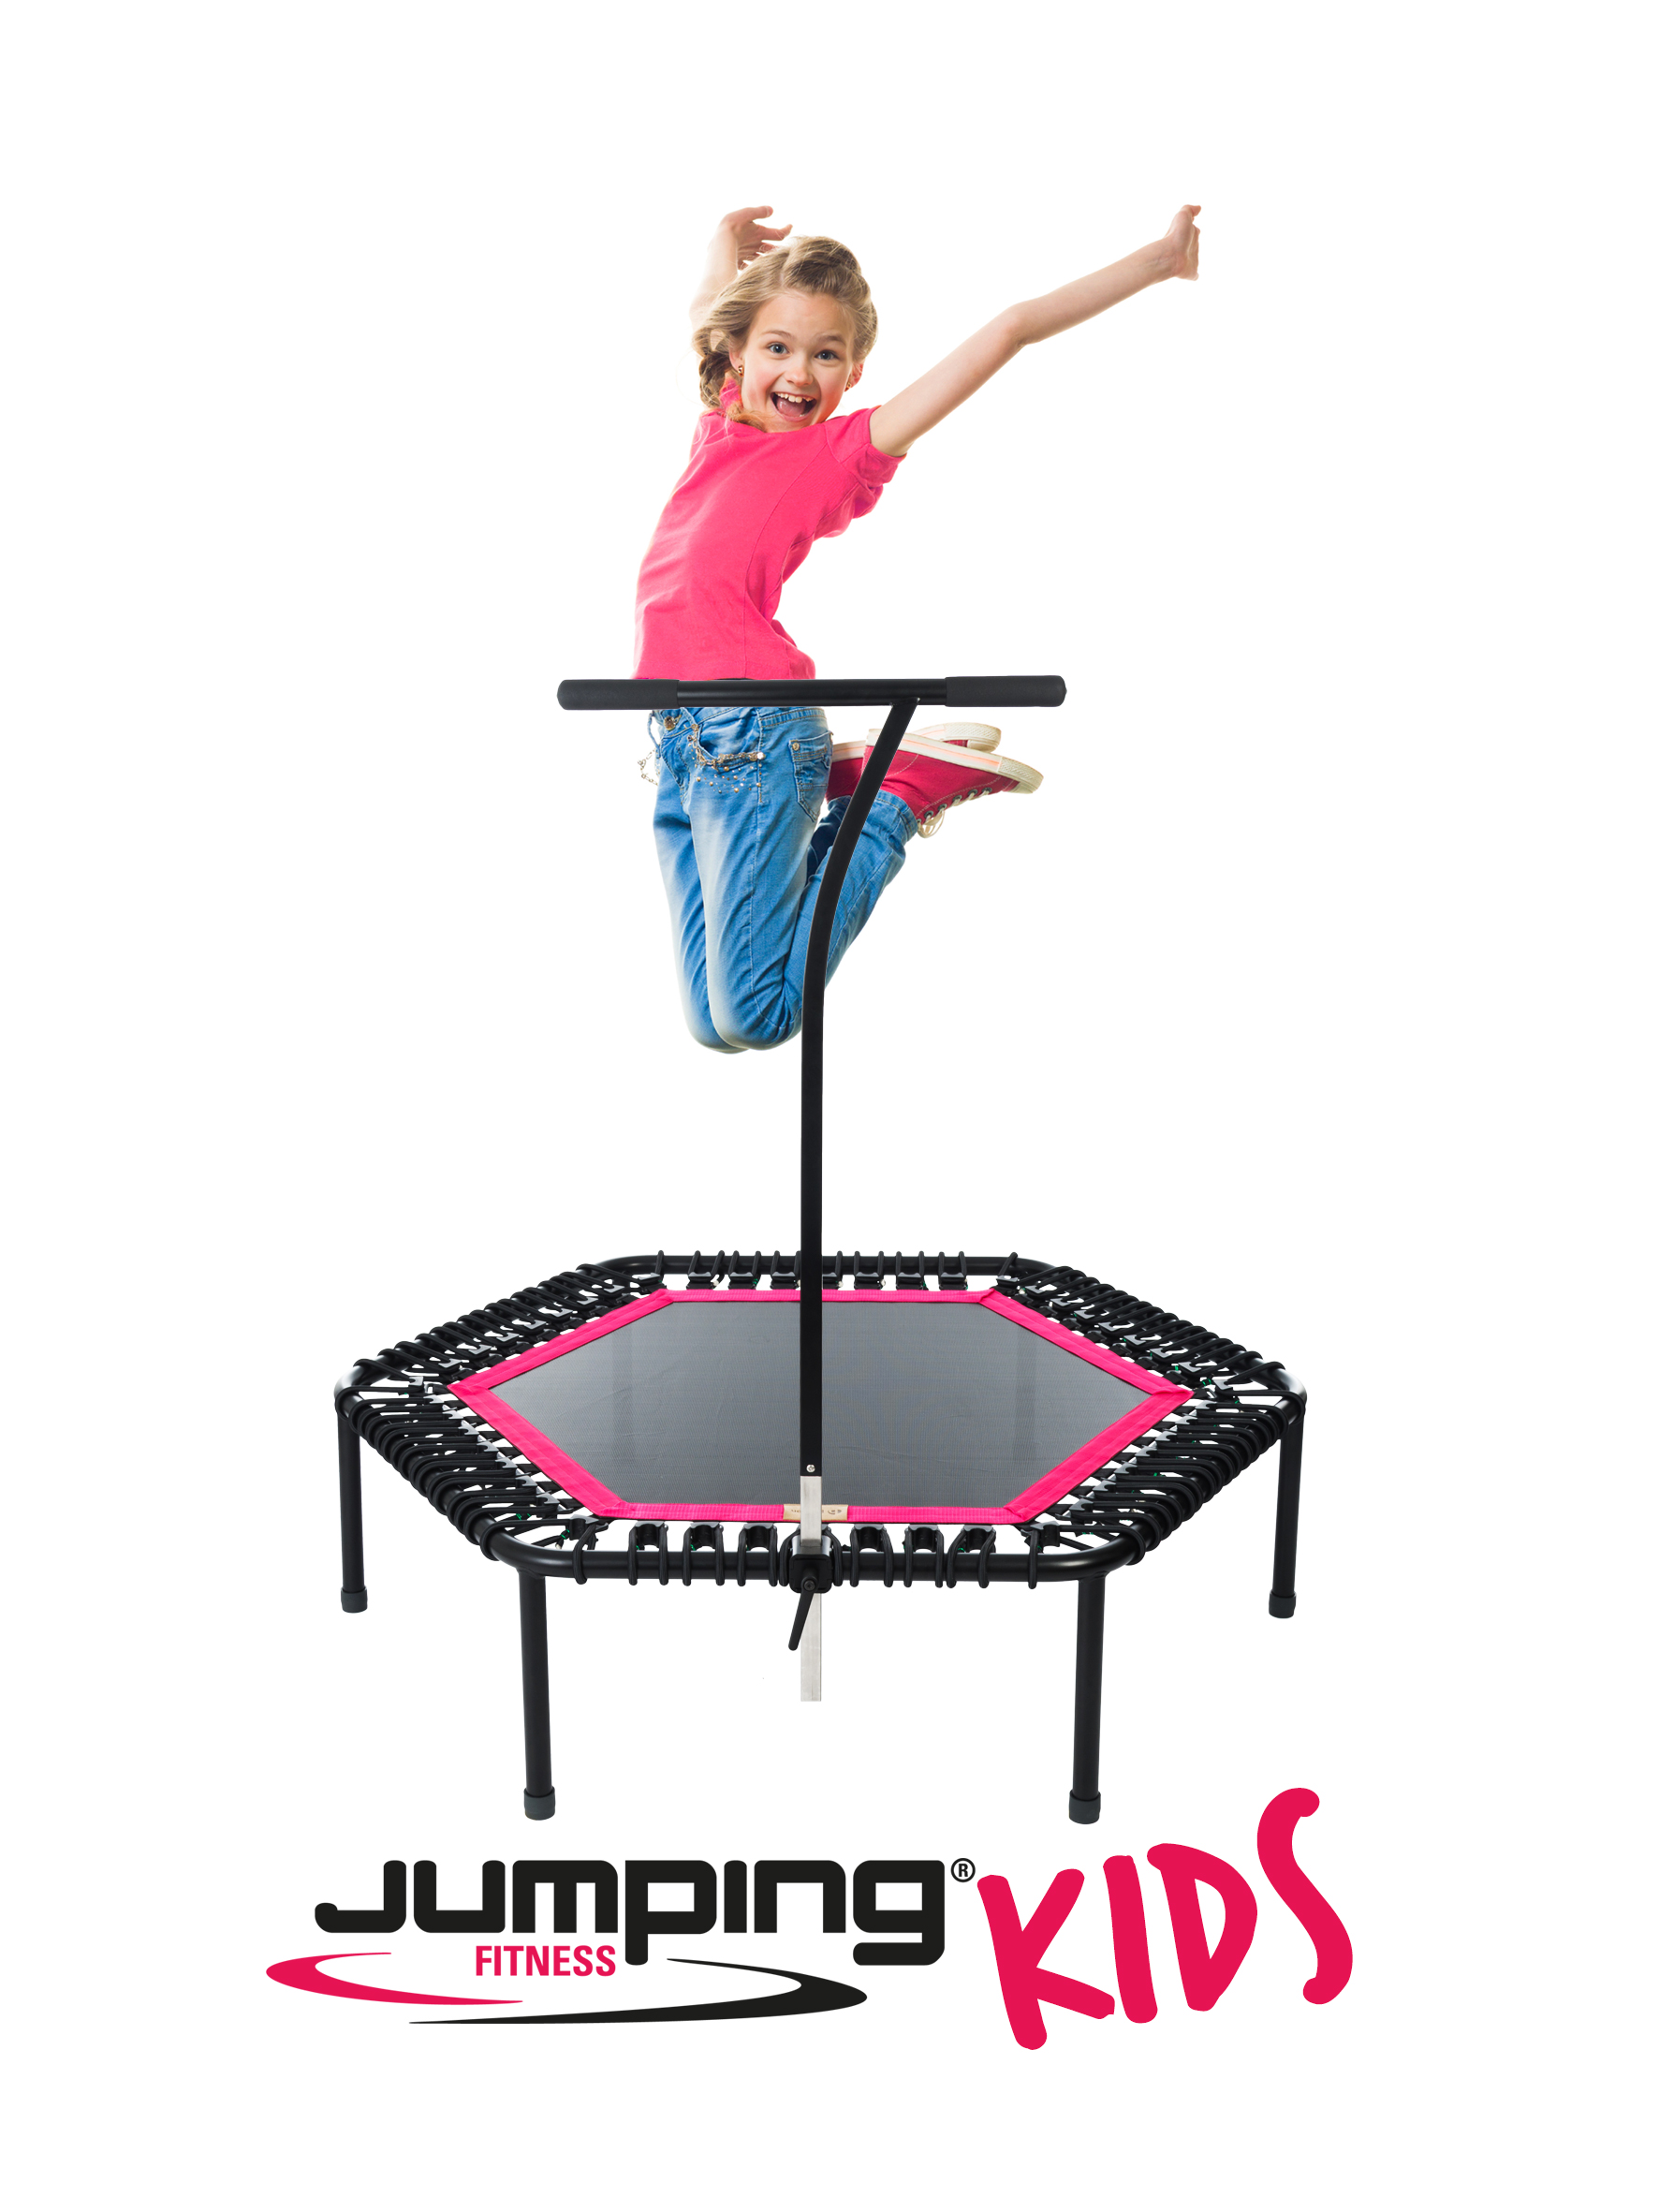 Jumping Fitness Trainers Jumping Fitness International